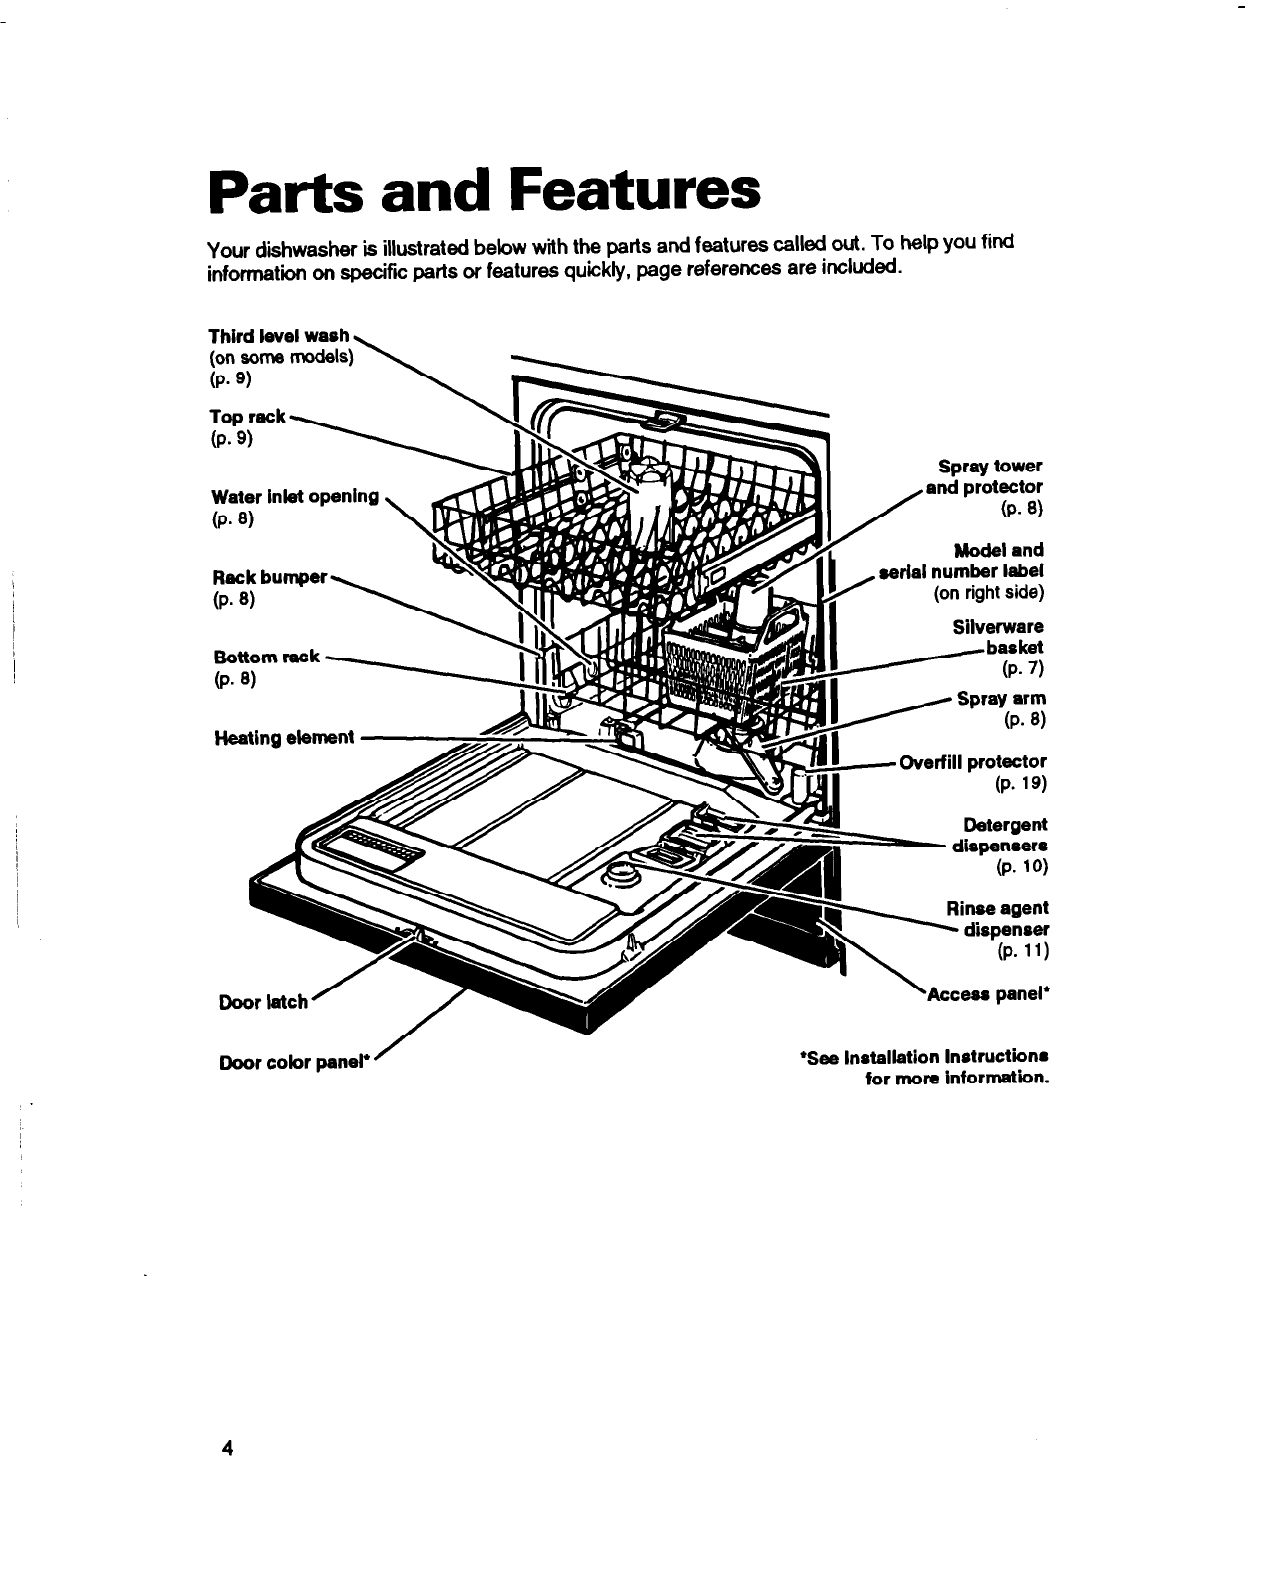 Whirlpool Dishwasher Service Manual Download. whirlpool